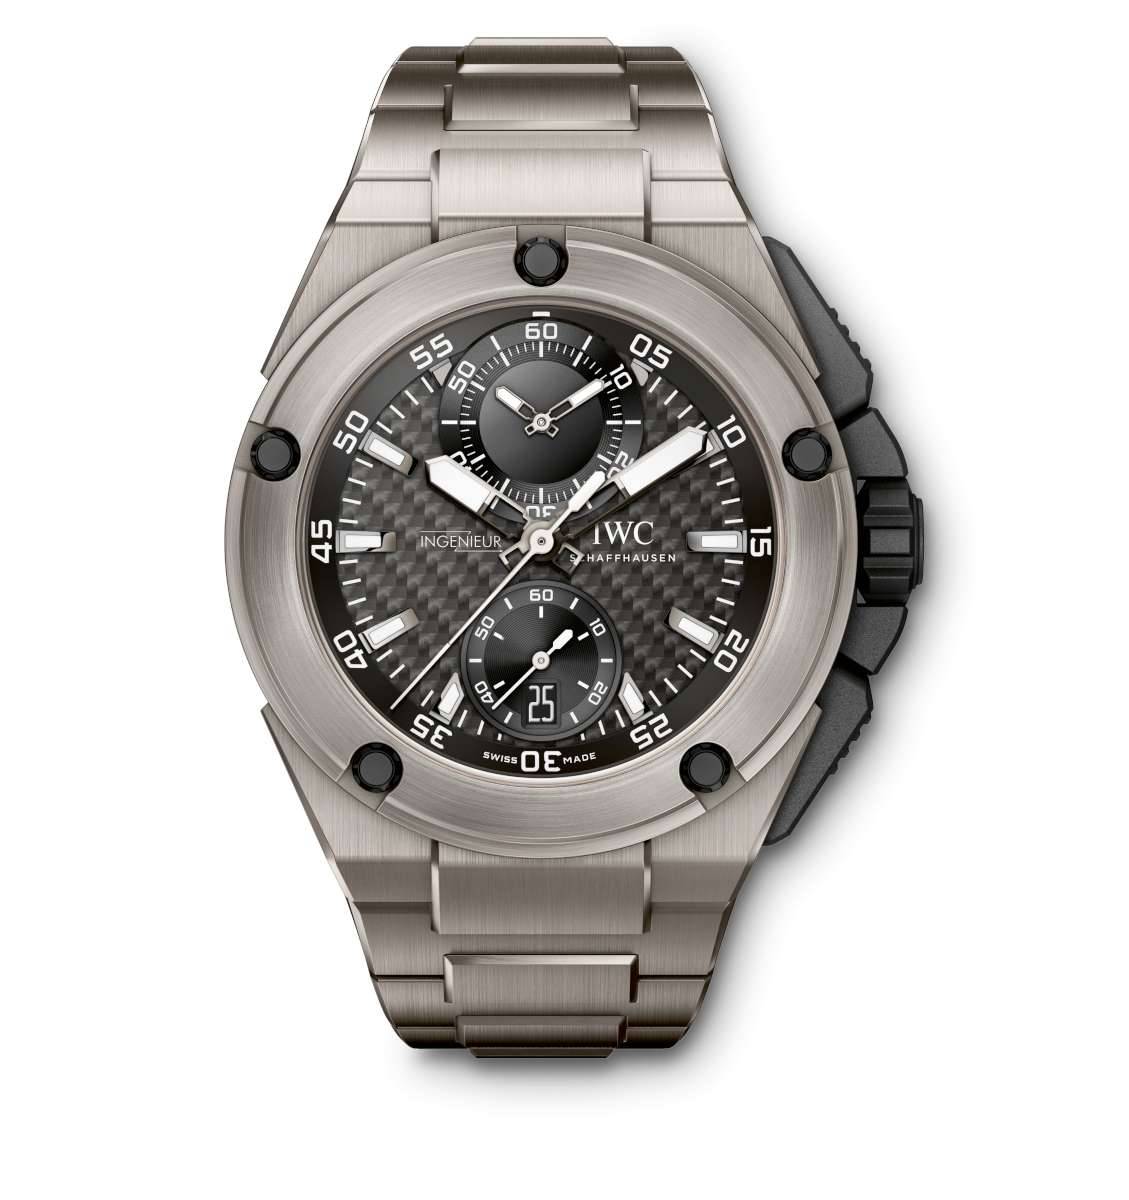 Lewis Hamilton's Ingenieur watch, with titanium bracelet and carbon dial